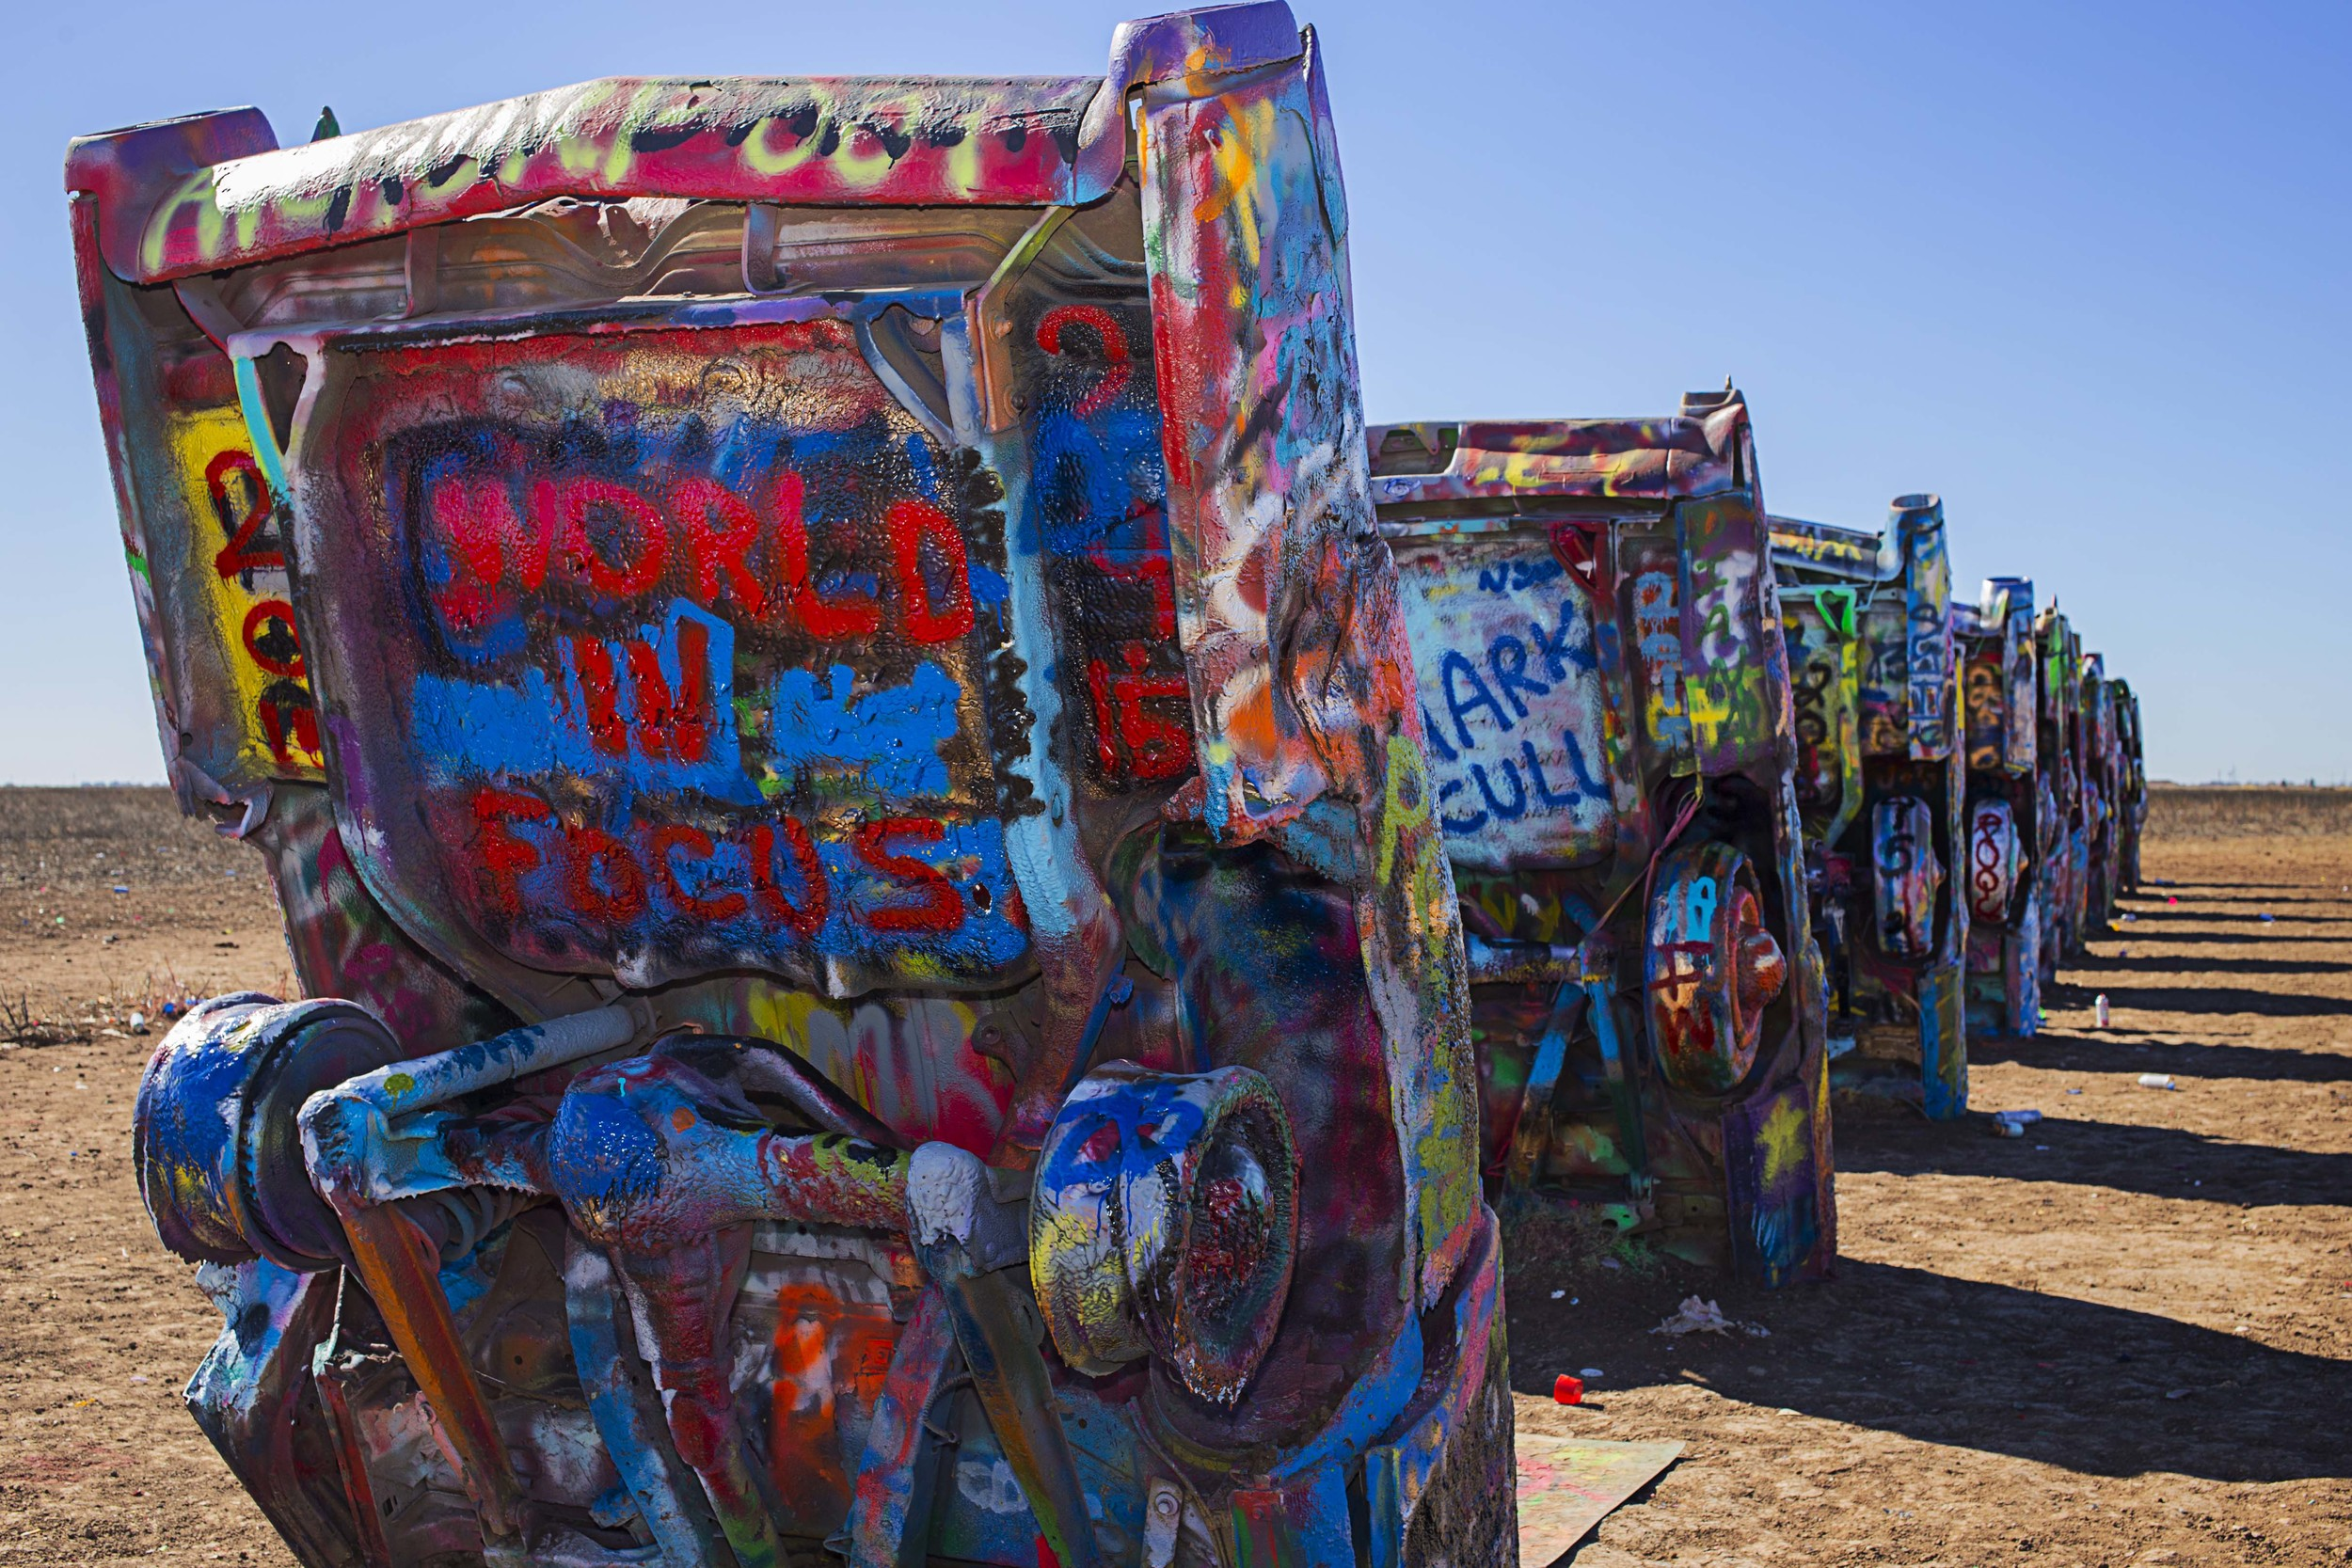 Day 17 - Amarillo, TX  We couldn't pass up a chance to stop by Cadillac Ranch on our way to Santa Fe, NM.  Here you will find literally old Cadillacs buried into the ground where you are encouraged to express yourself.  Don't mind if we do!